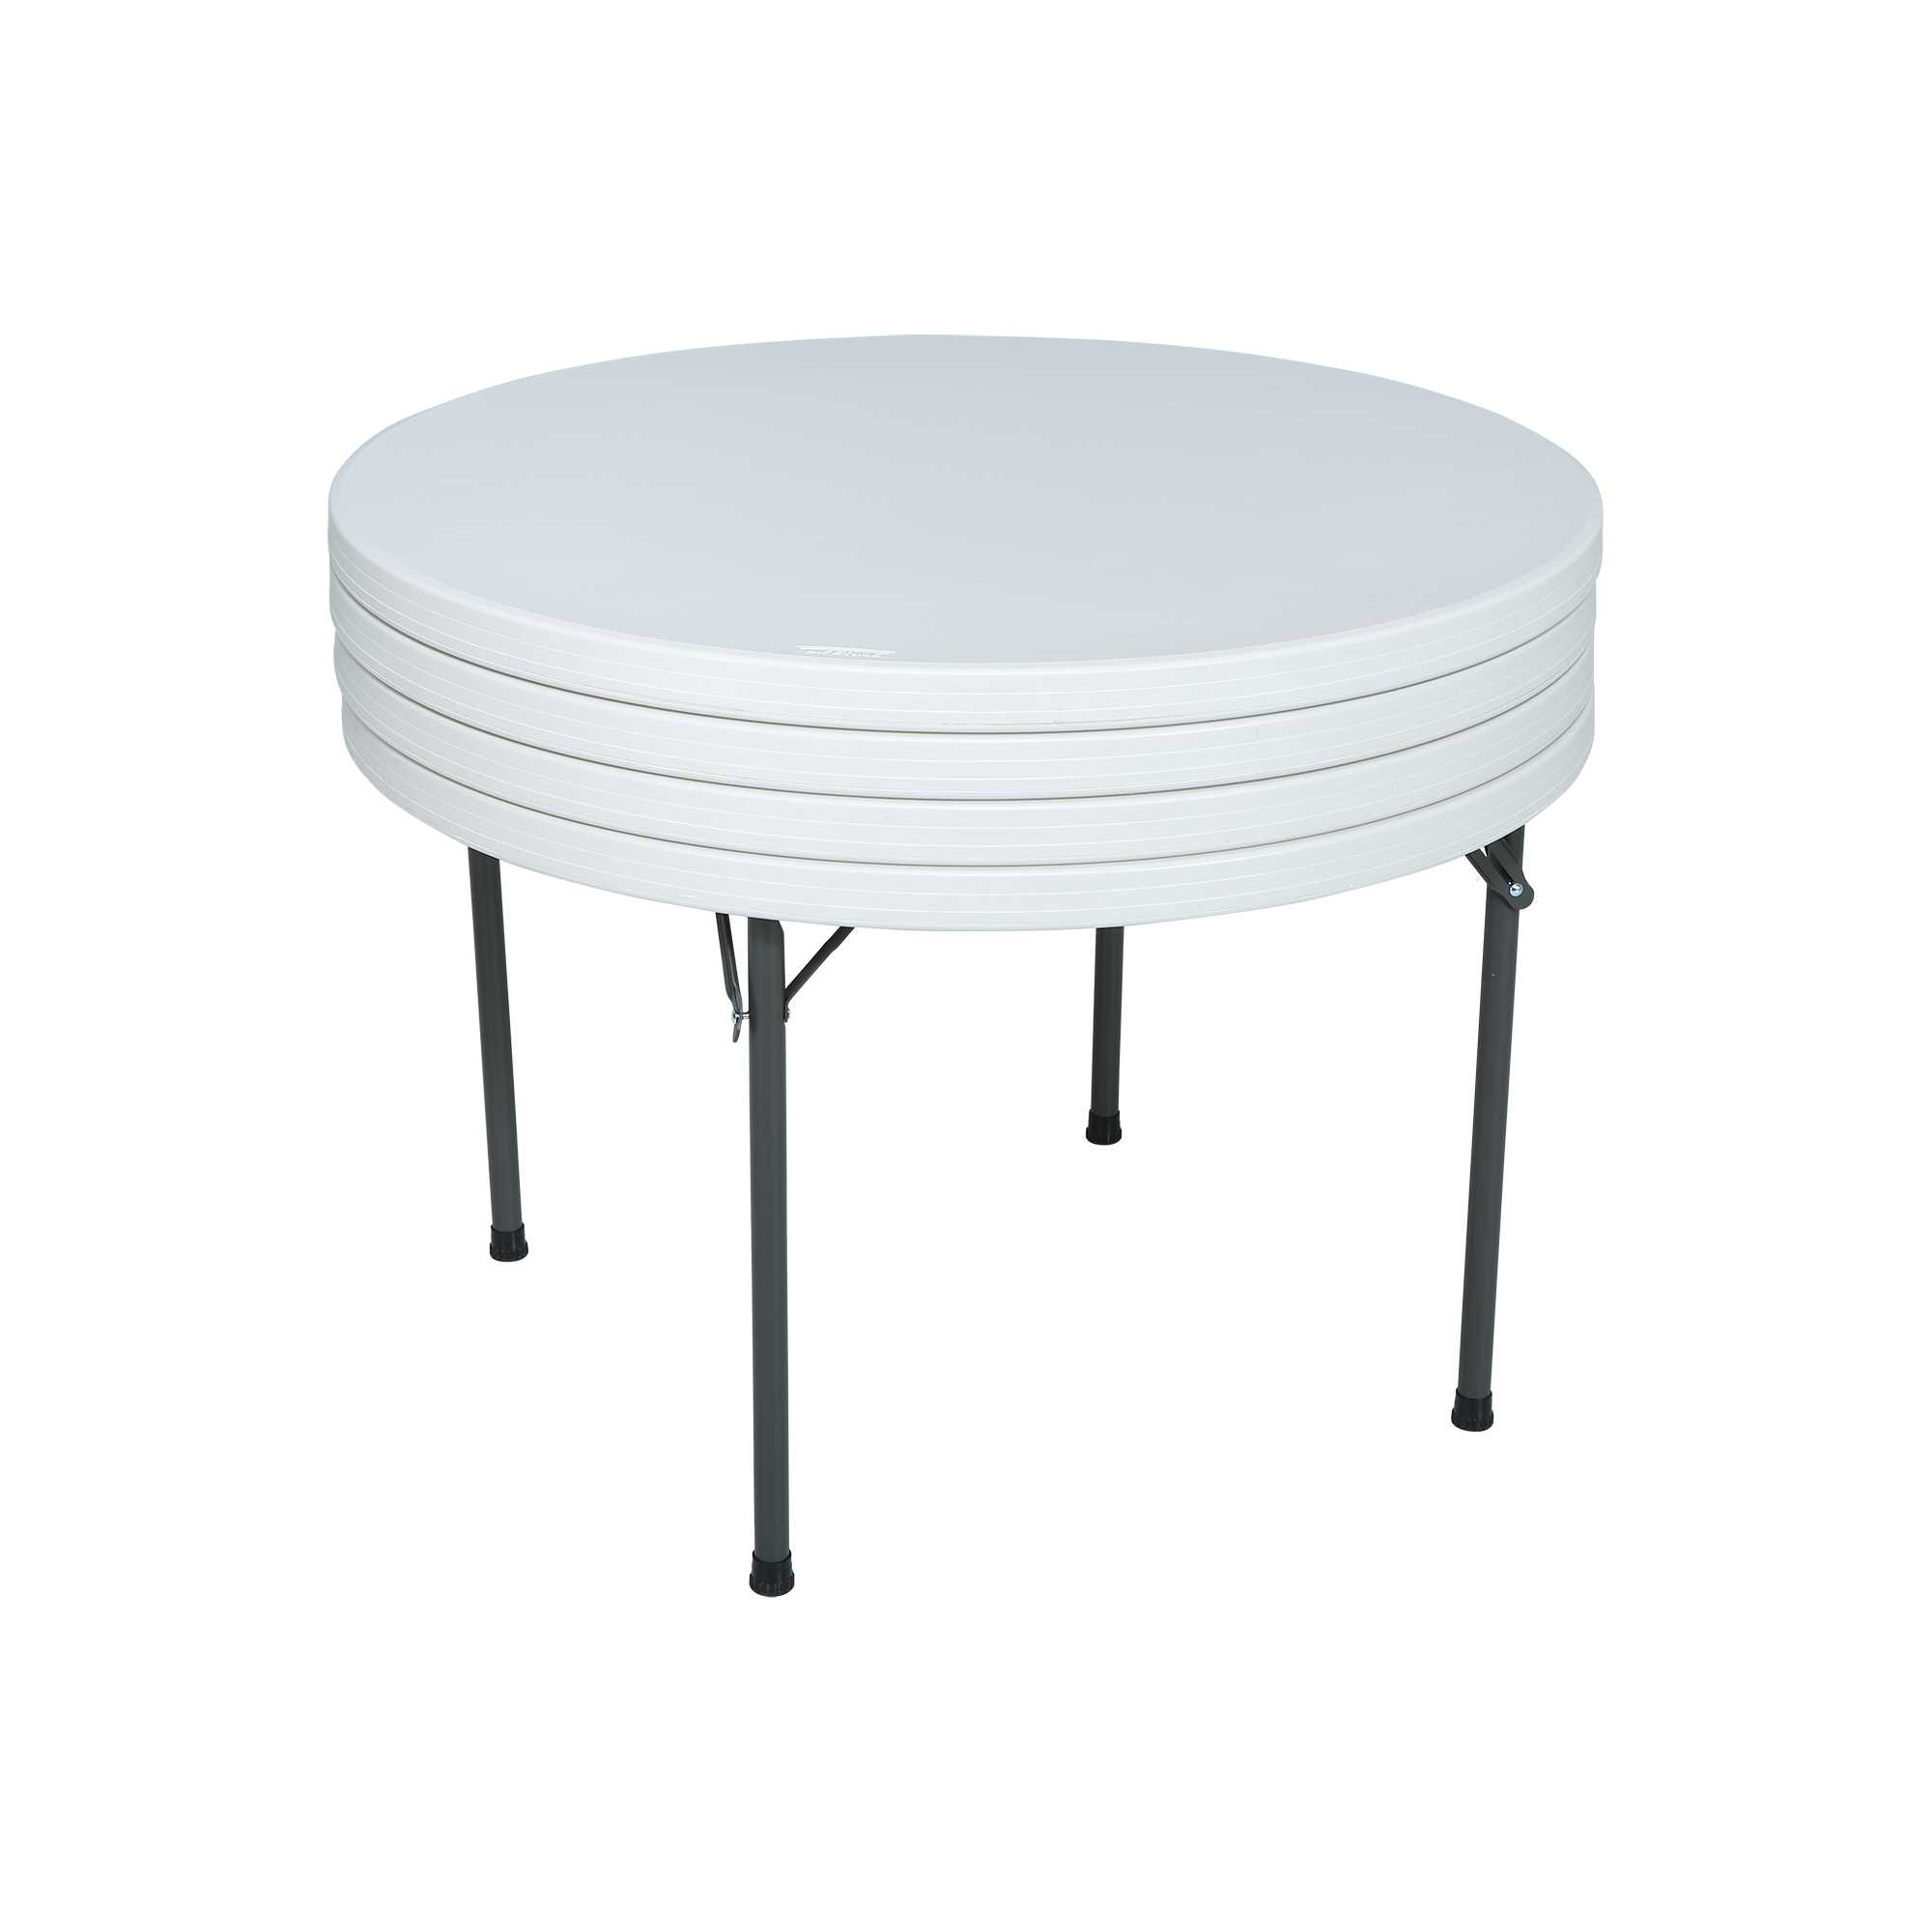 Table pliante ronde dia 122cm 4 6 personnes table pliante table pliante poly thyl ne - Table ronde 6 personnes ...